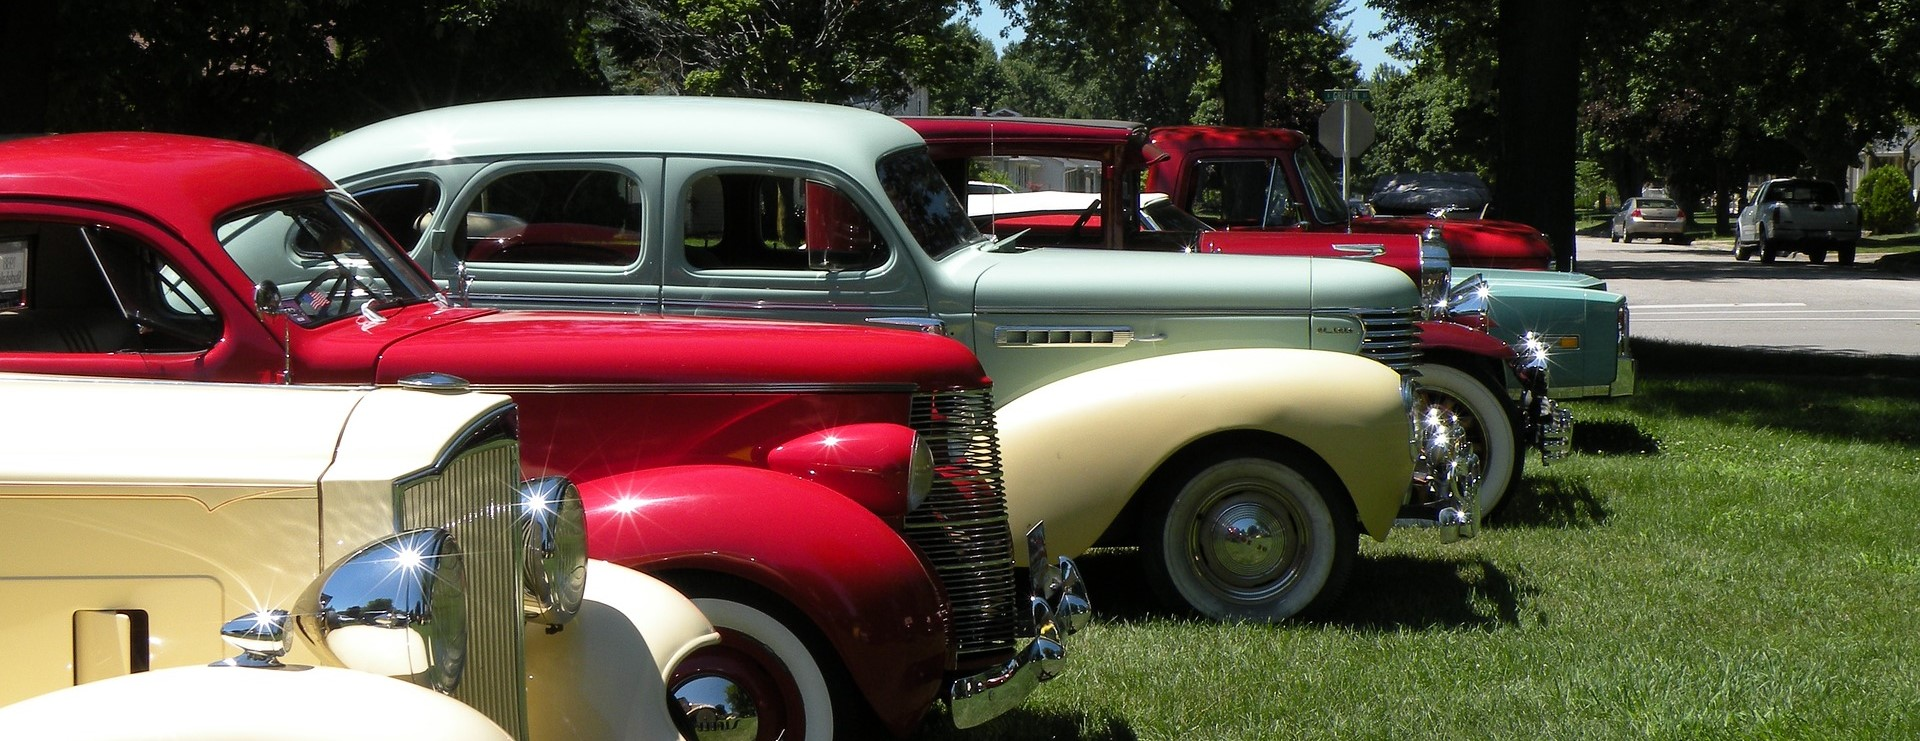 Vintage Cars in New Rochelle, New York | Breast Cancer Car Donations